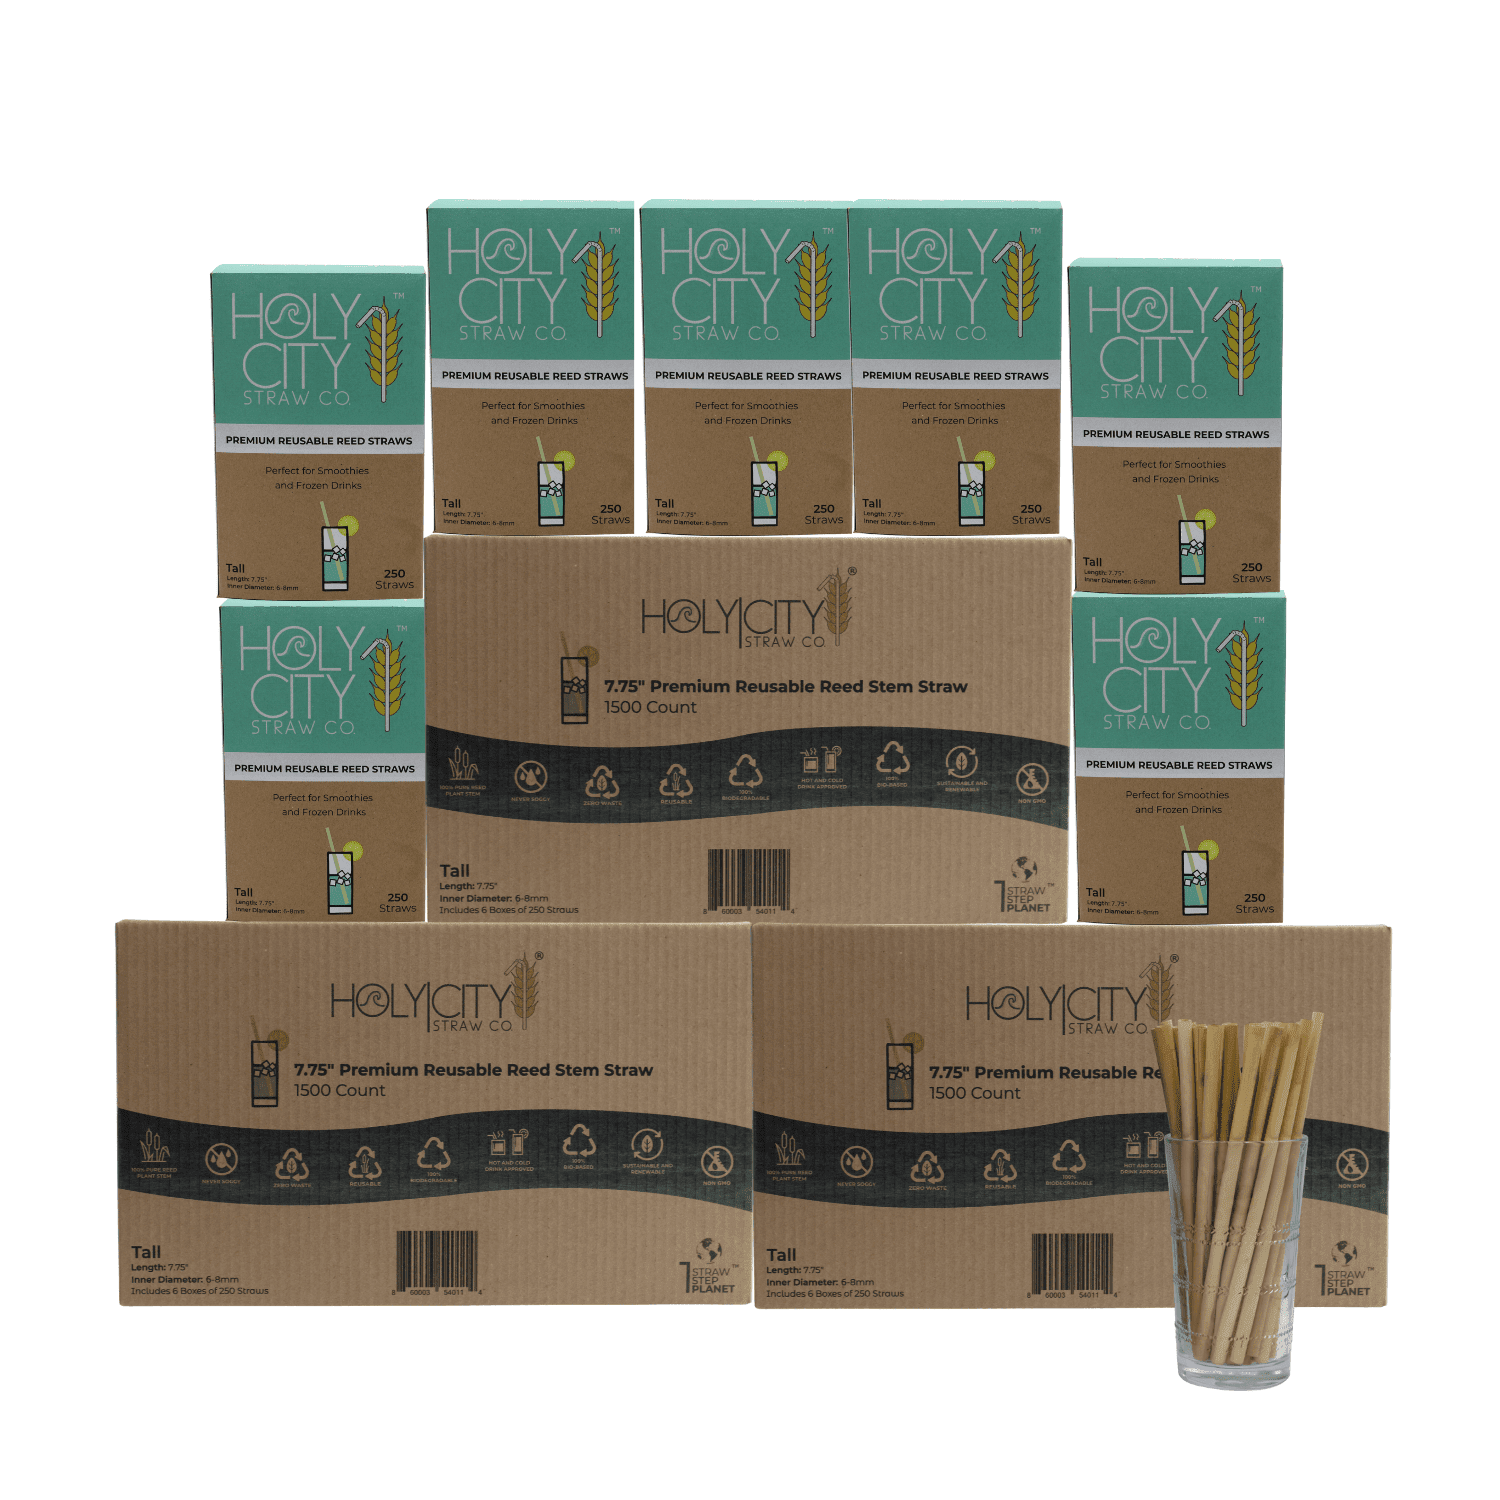 4500 count case containing 18 boxes of 250 ct boxes of Holy City tall reusable reed Straws